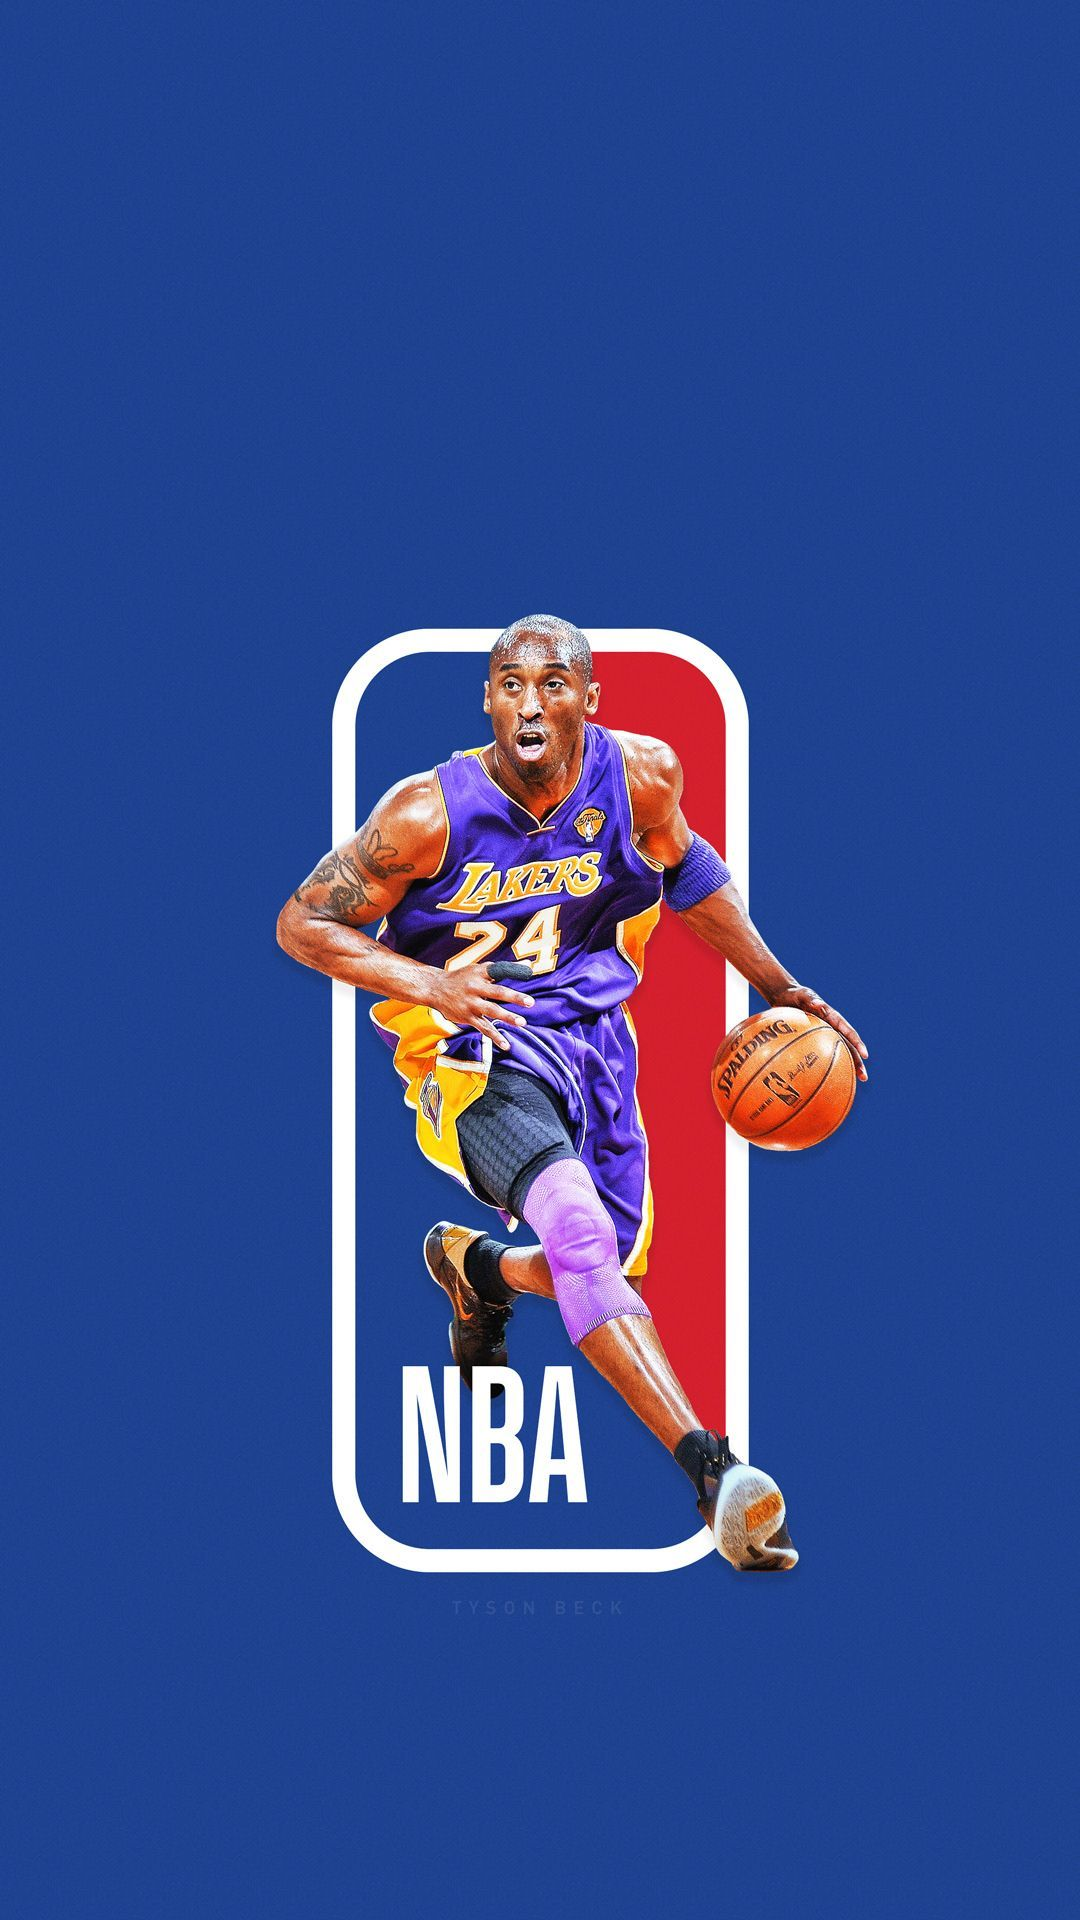 Golf Nba Logo Nba Fondos De Pantalla Curry Nba Art Nba Jersey Outfit Men Nba Game Outfit Woman Nba Basketball In 2020 Kobe Bryant Wallpaper Lakers Kobe Nba Logo